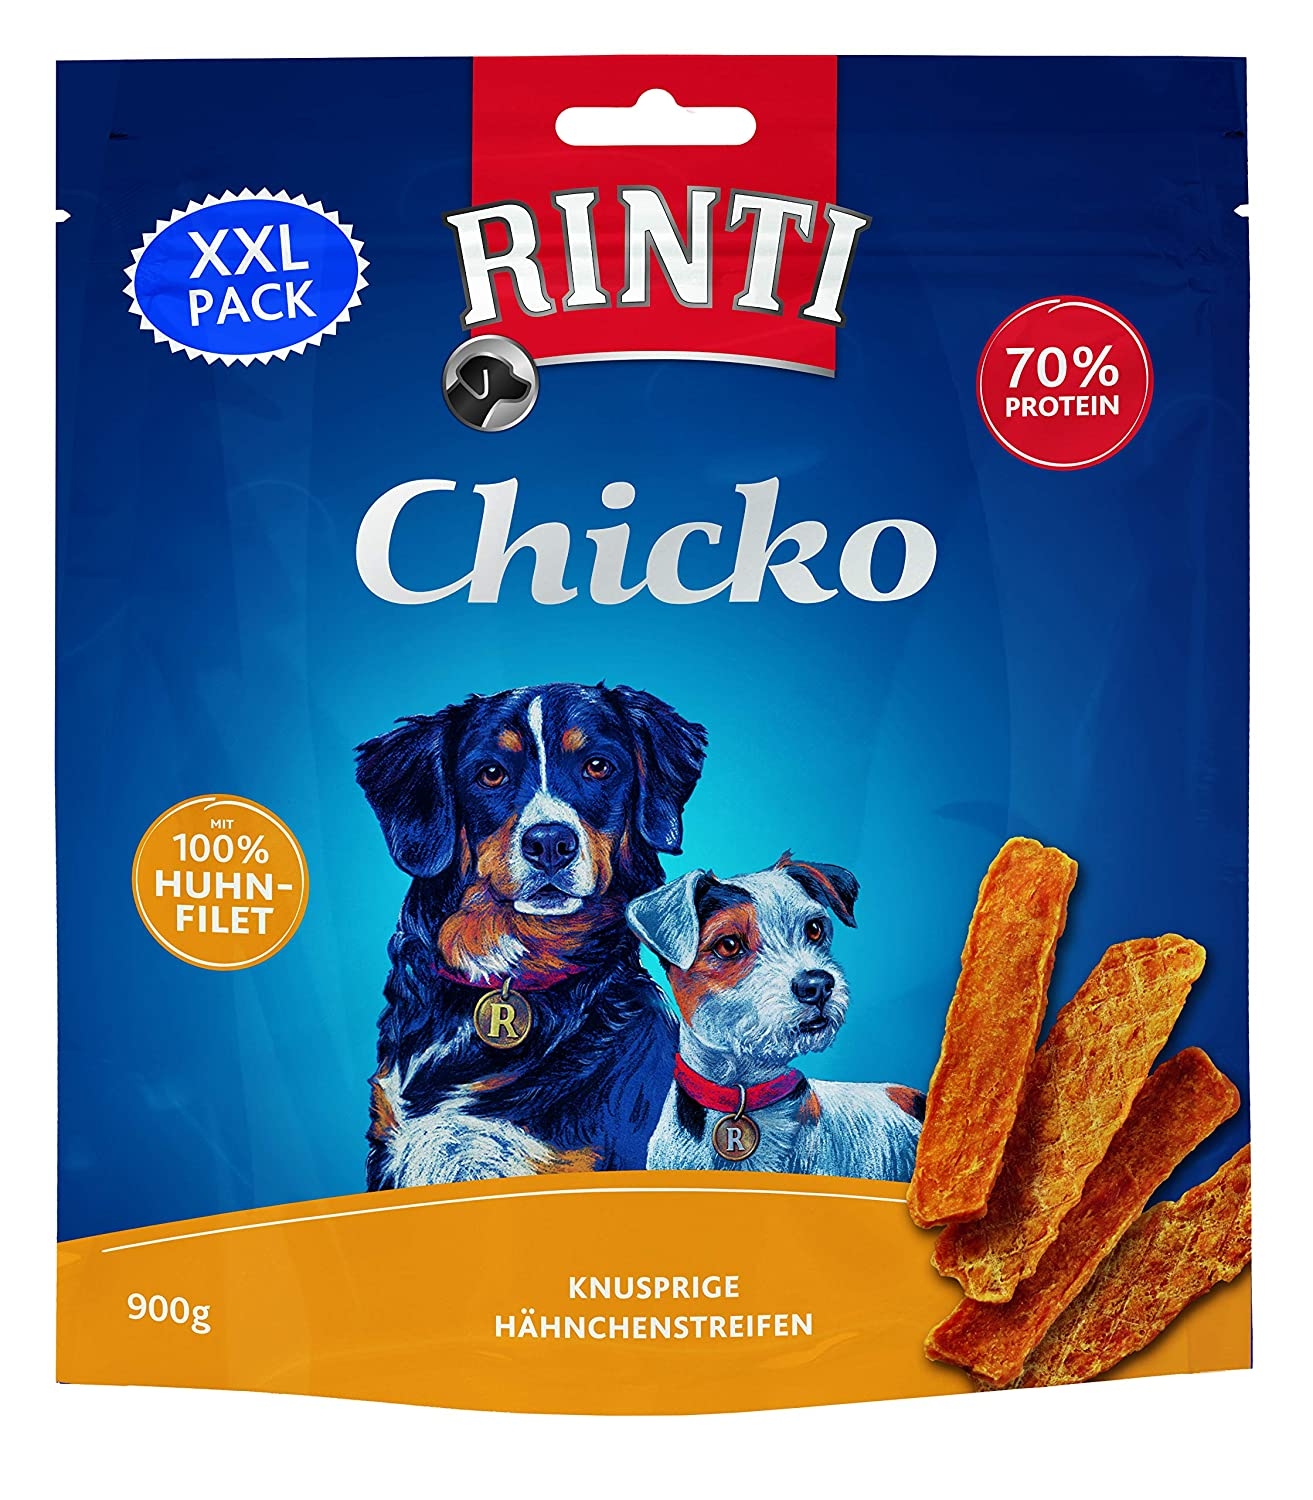 Rinti Extra–Chicko Poule XXL de Pack, 1er Pack (1x 900g) FINNERN 91366